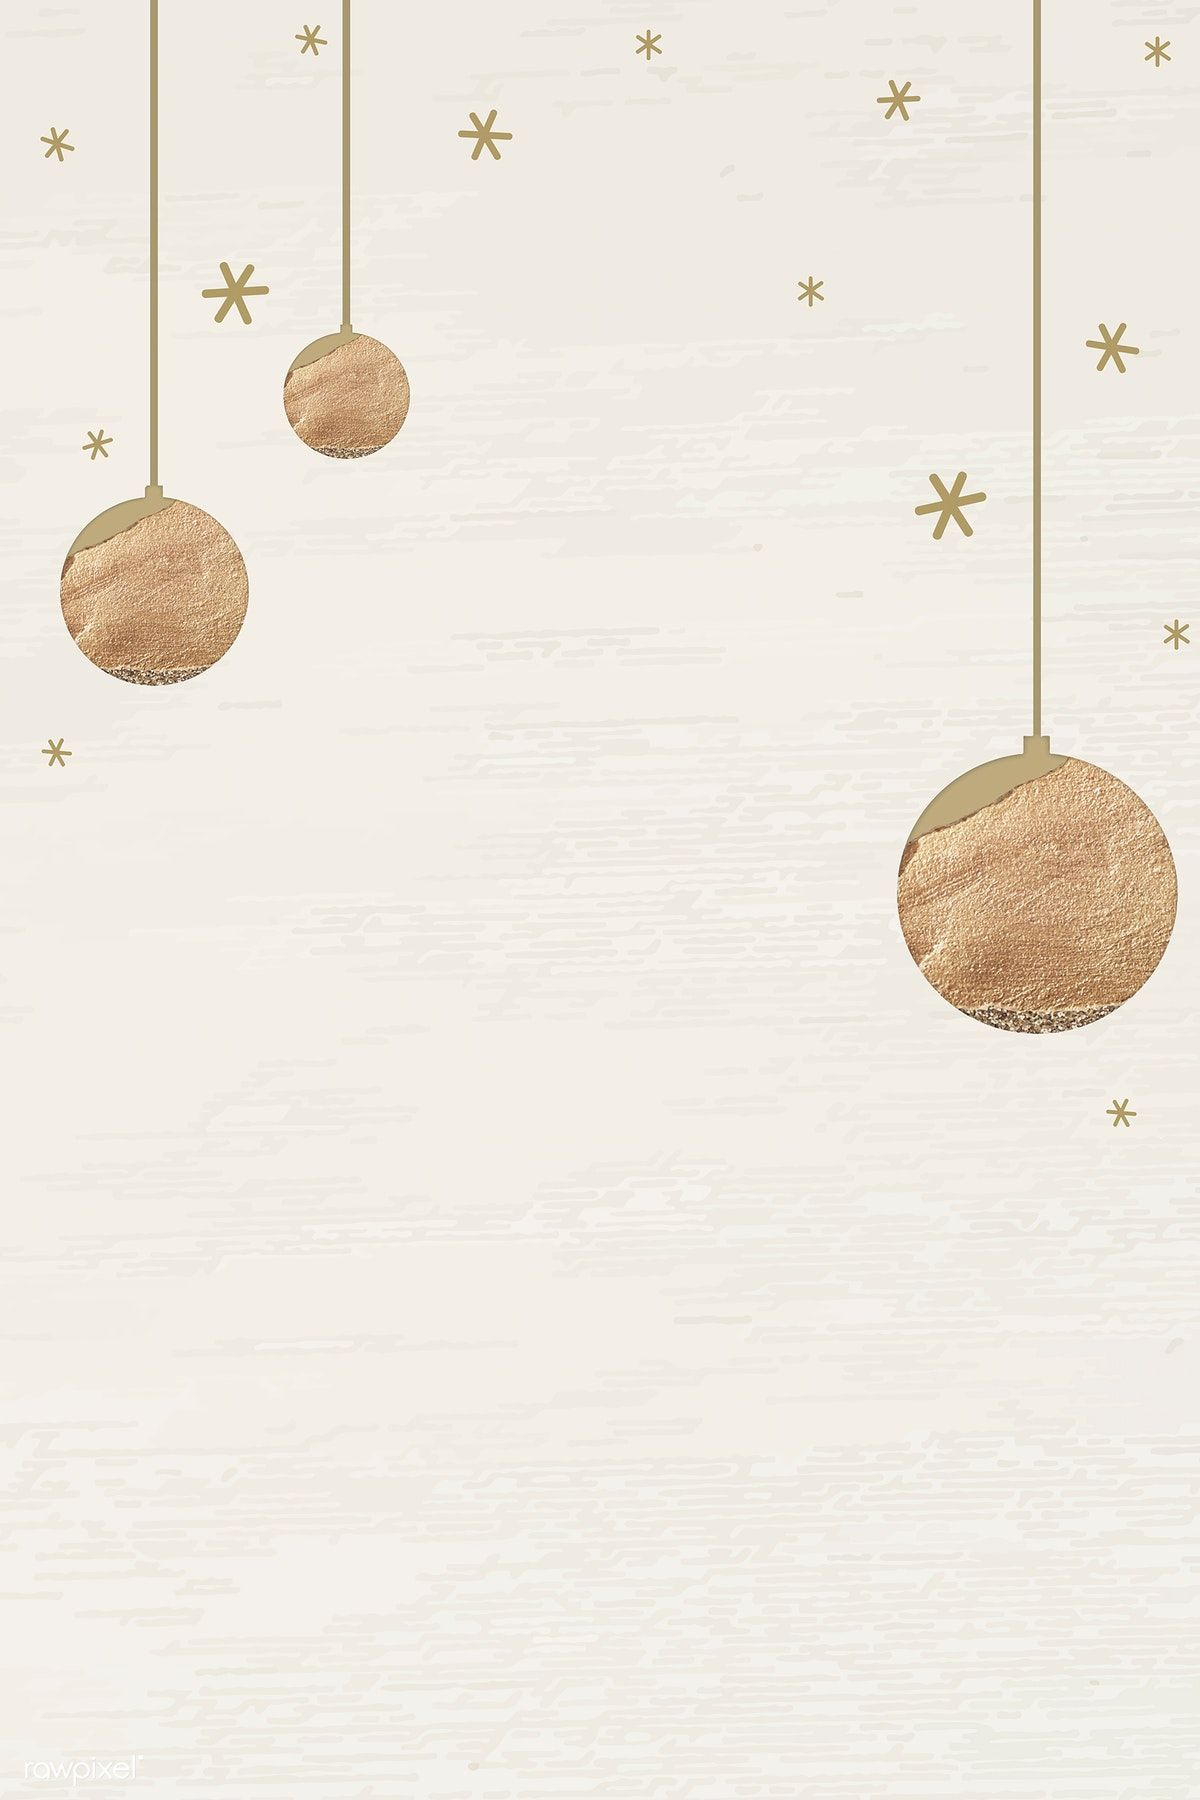 Download Premium Vector Of New Year Gold Balls With Shimmering Star Lights New Year Wallpaper Cute Christmas Wallpaper Wallpaper Iphone Christmas